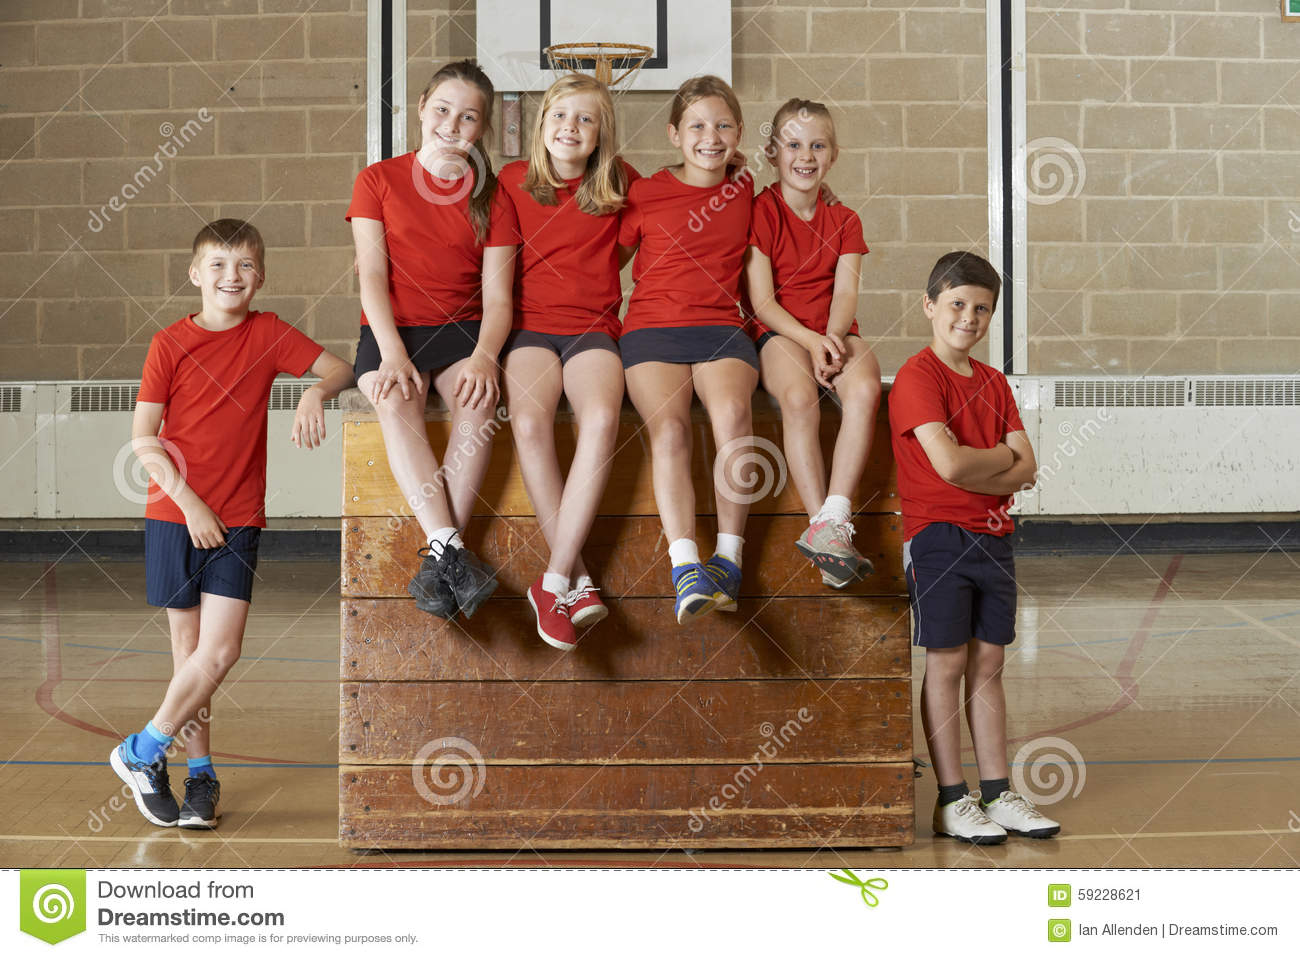 Retrato del gimnasio Team Sitting On Vaulting Horse de la escuela